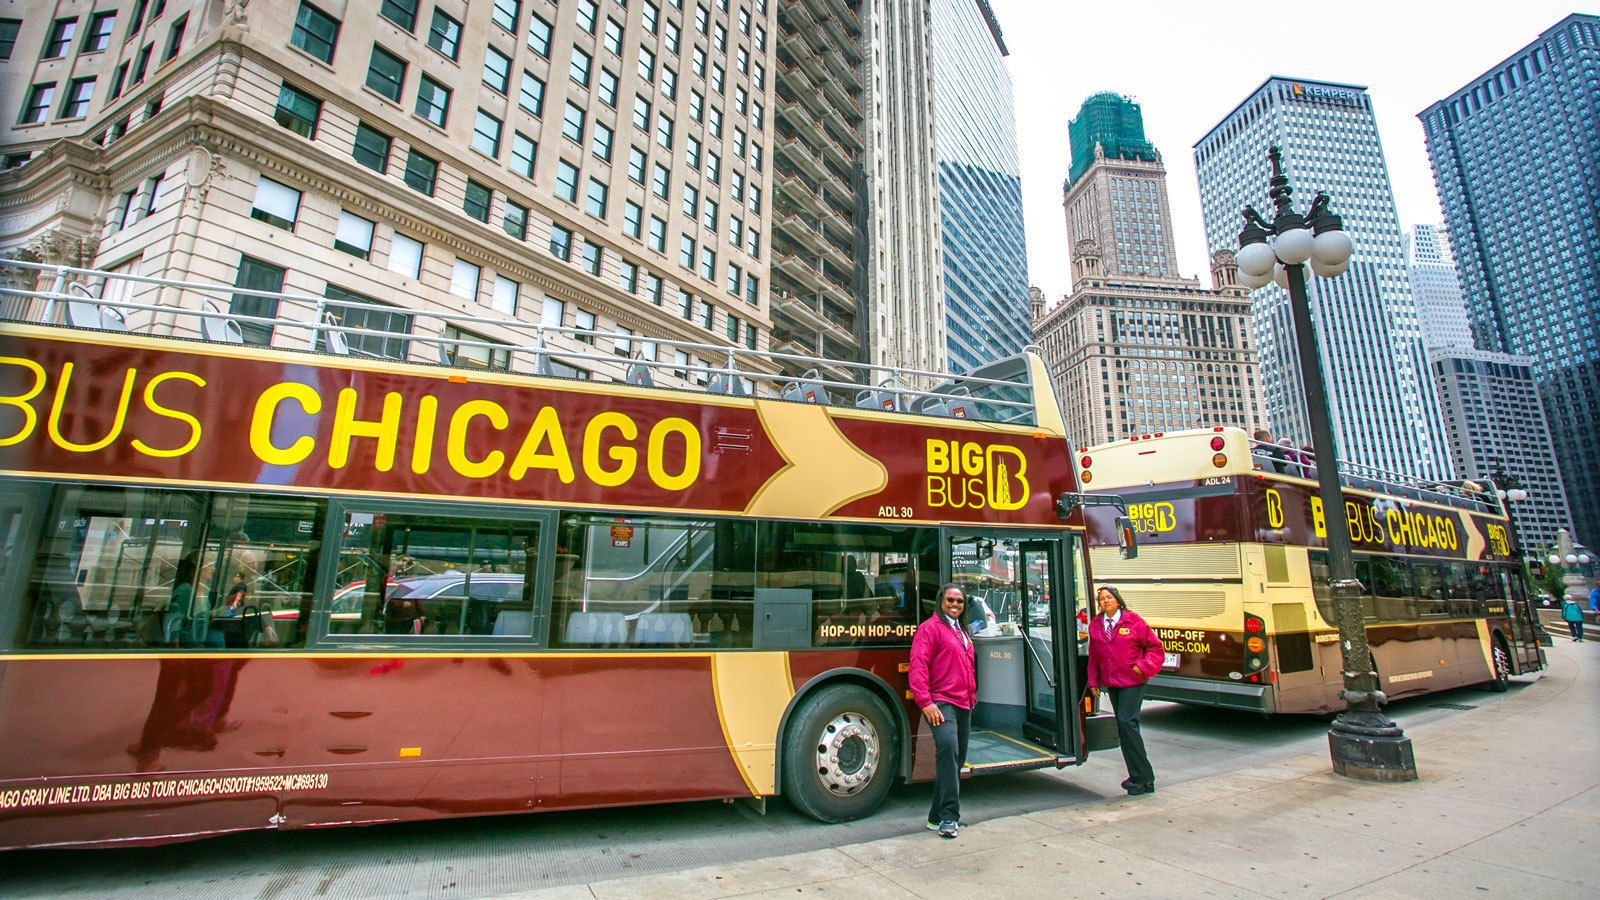 double deck bus parked on the street in Chicago